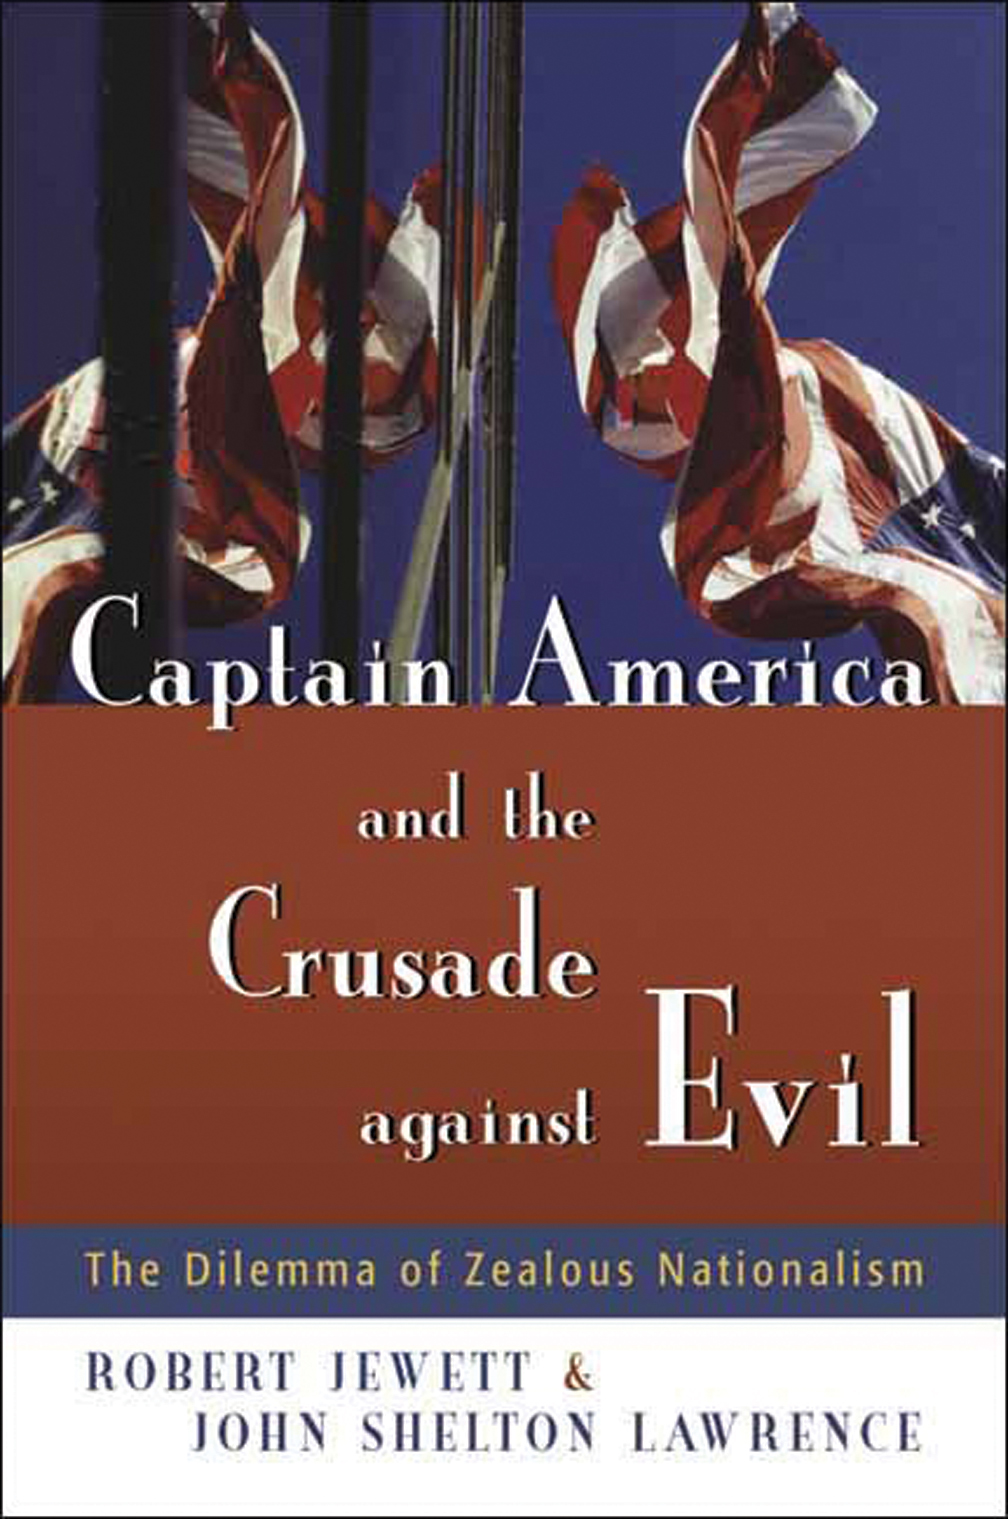 """""""Captain America: The First Avenger"""" Meets """"Captain America and the Crusade against Evil"""""""